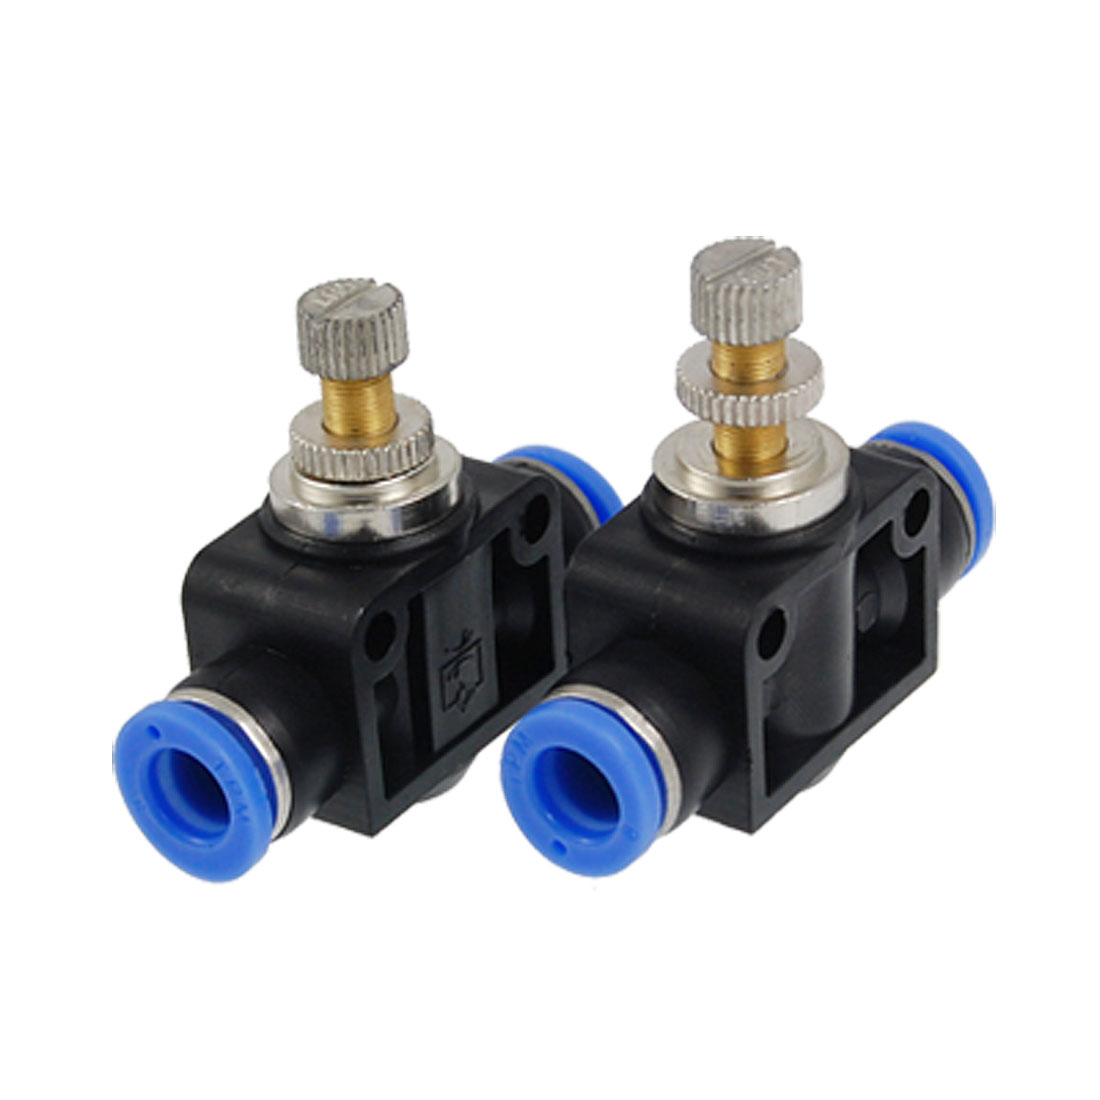 2 Pcs Two Way Push in to Connect Fitting Speed Controller 8mm